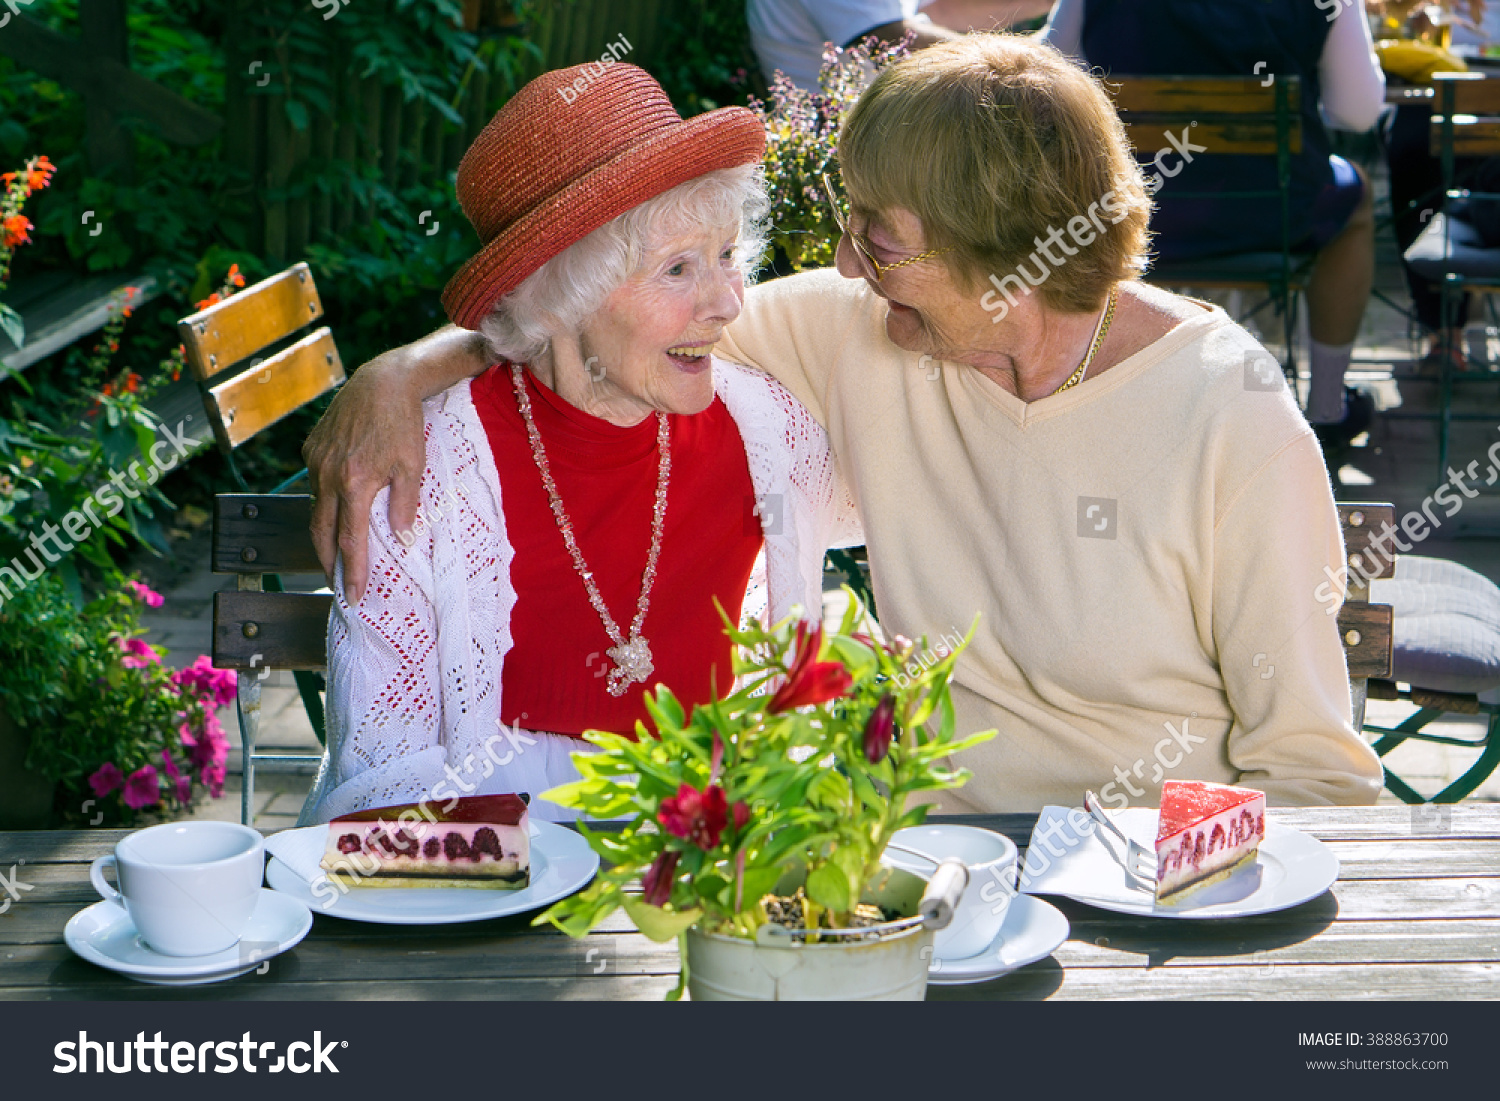 Woman hugging cute laughing friend in red hat in blouse at lunch with plates of cake  sc 1 st  Shutterstock & Woman Hugging Cute Laughing Friend Red Stock Photo 388863700 ...